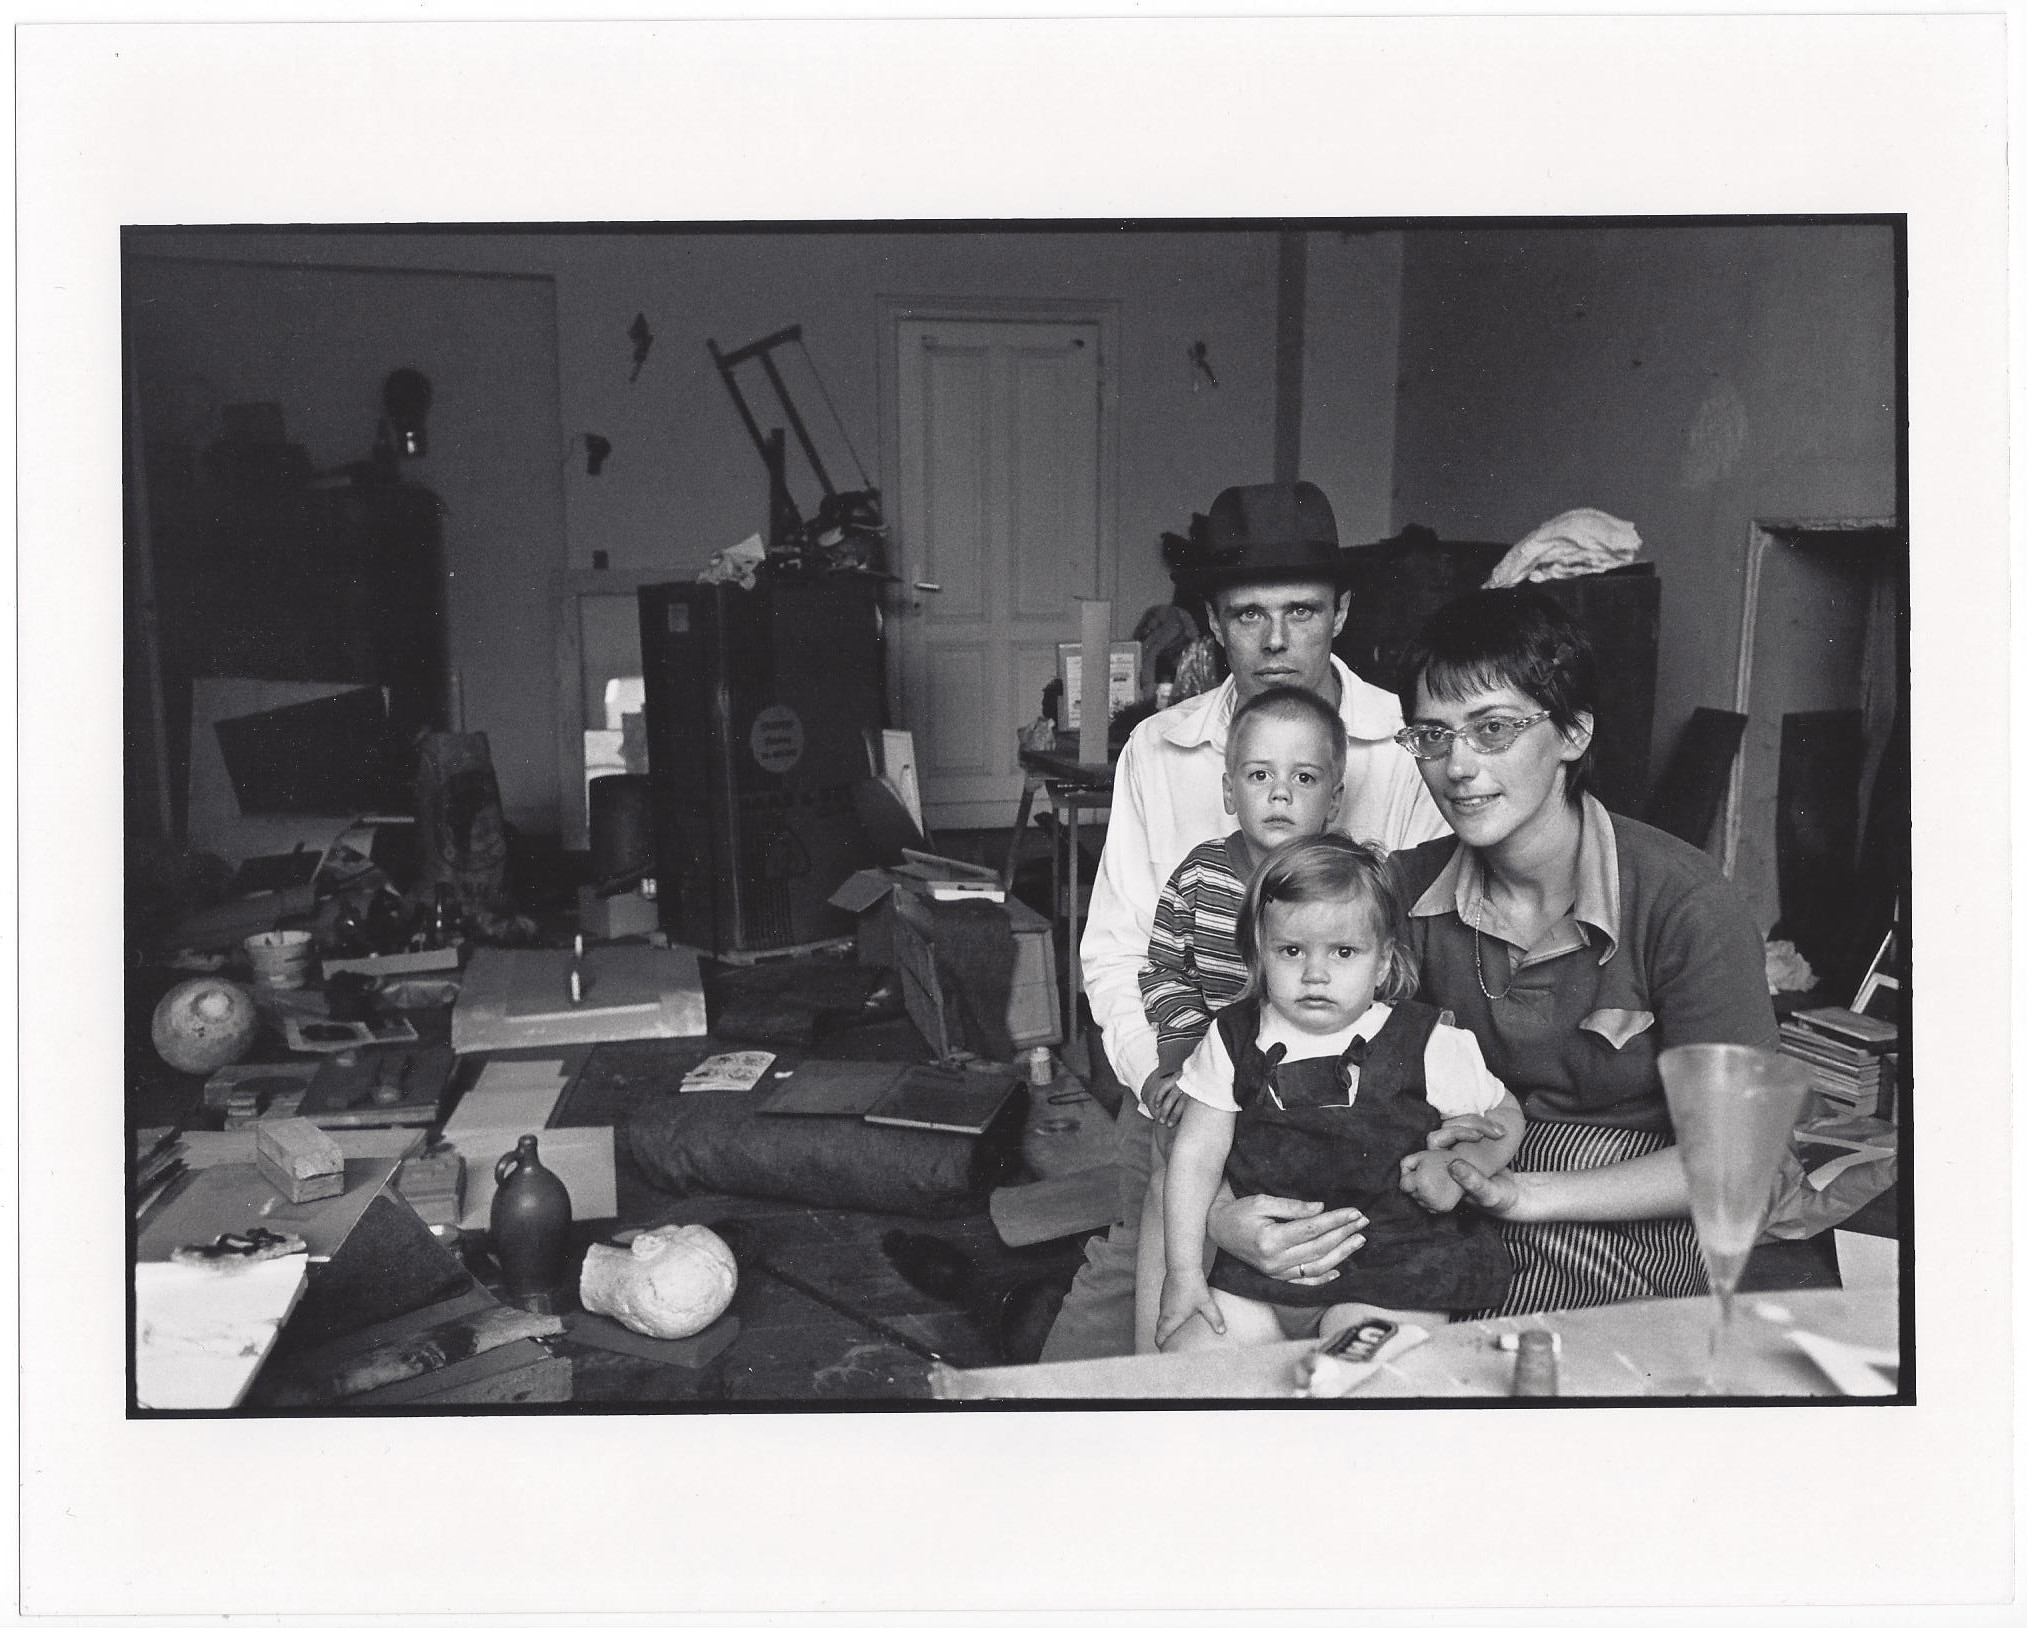 Joseph Beuys and his Family in his Home in Oberkassel